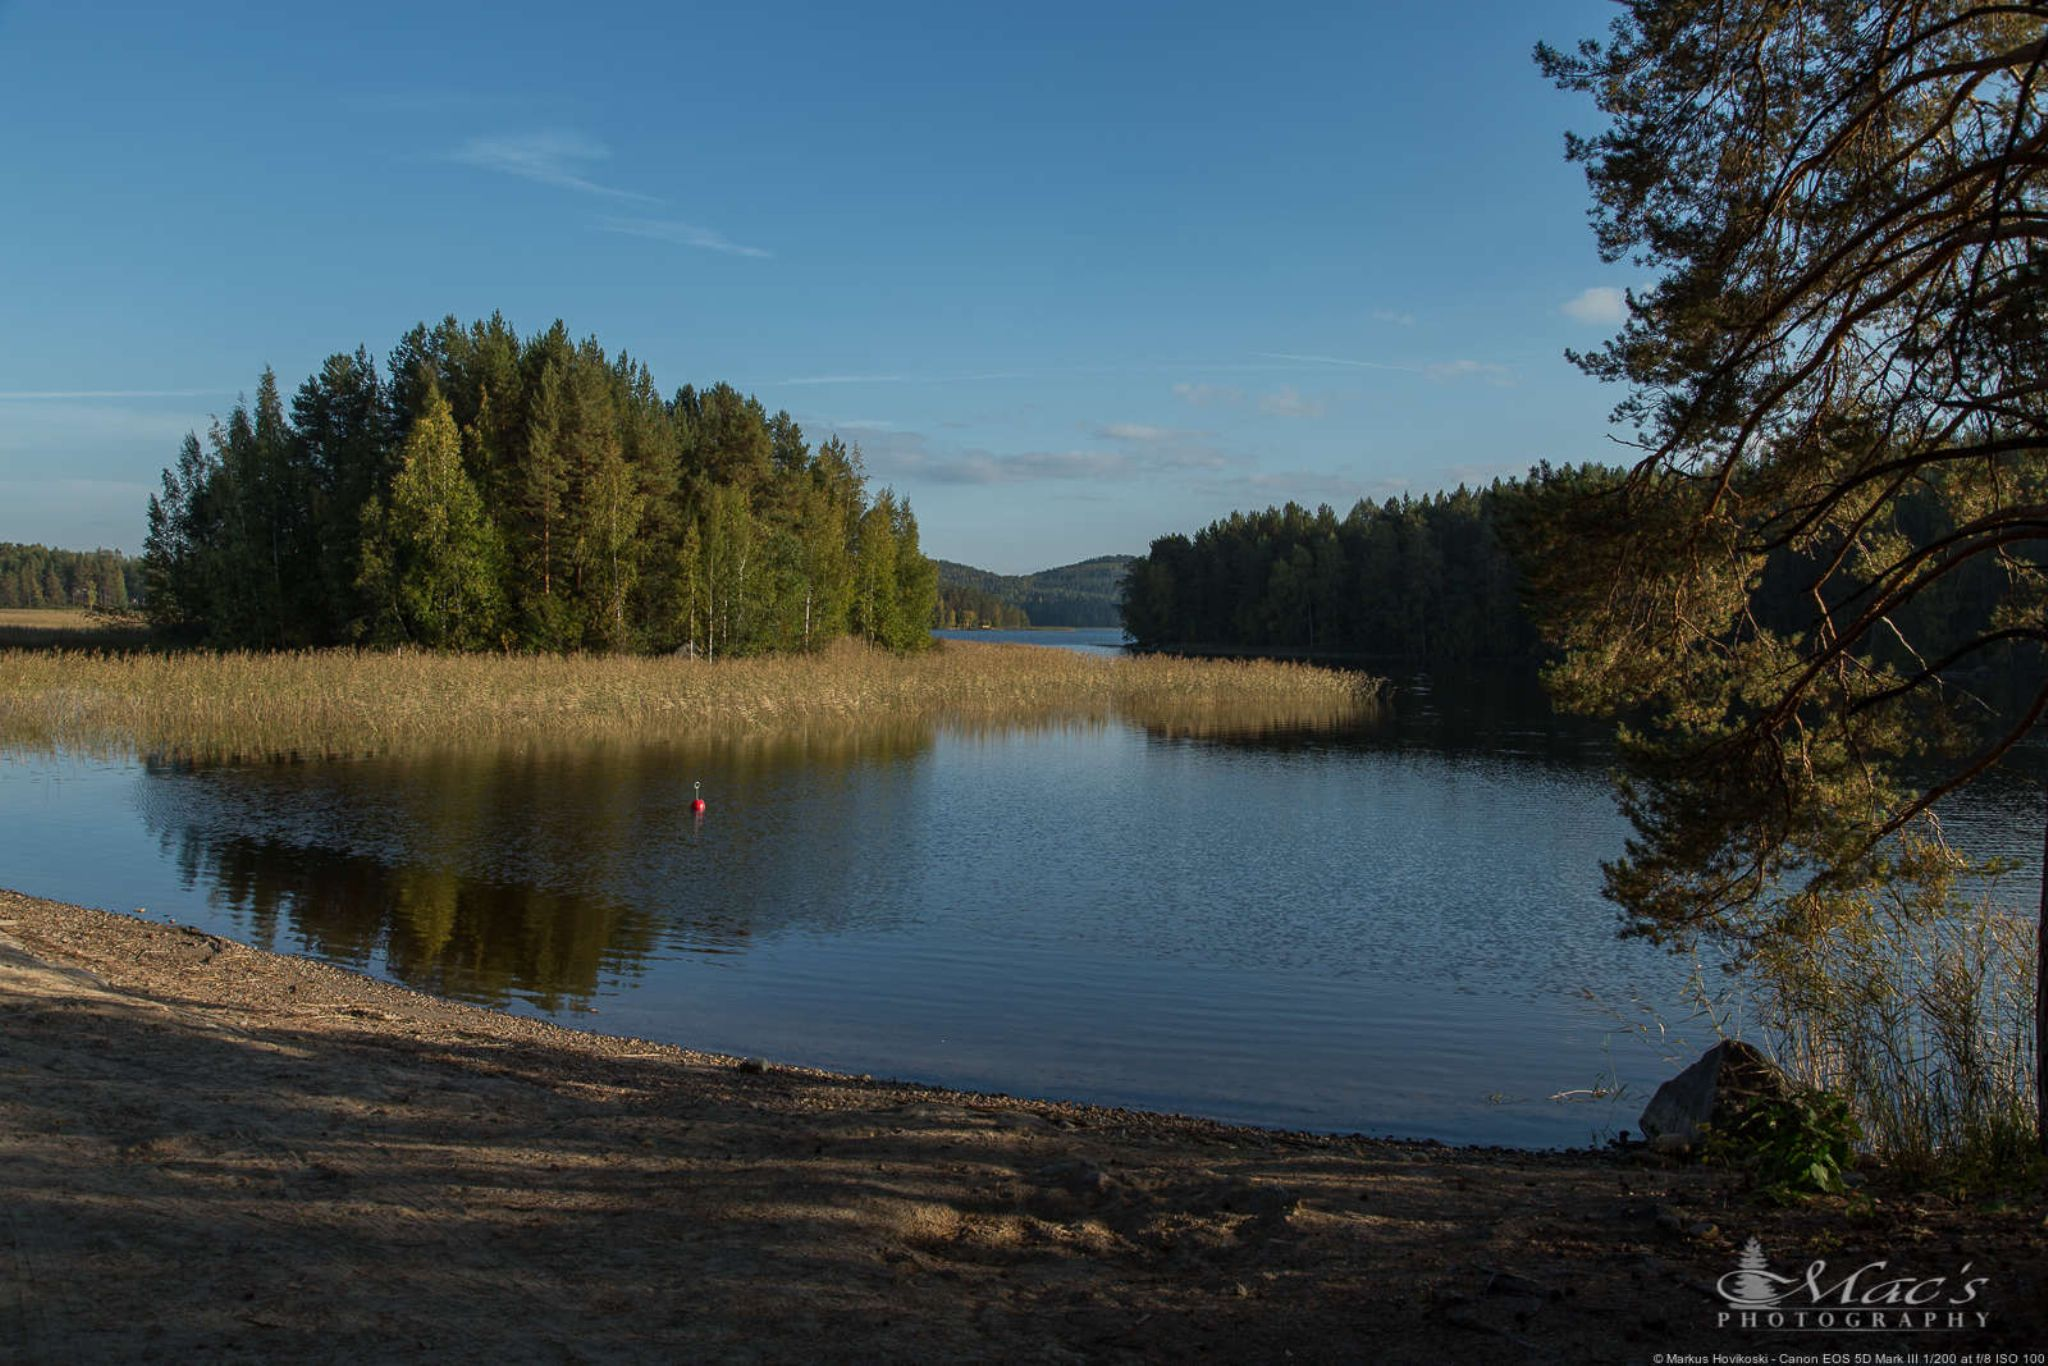 Finnish landscape by Mac's Photography